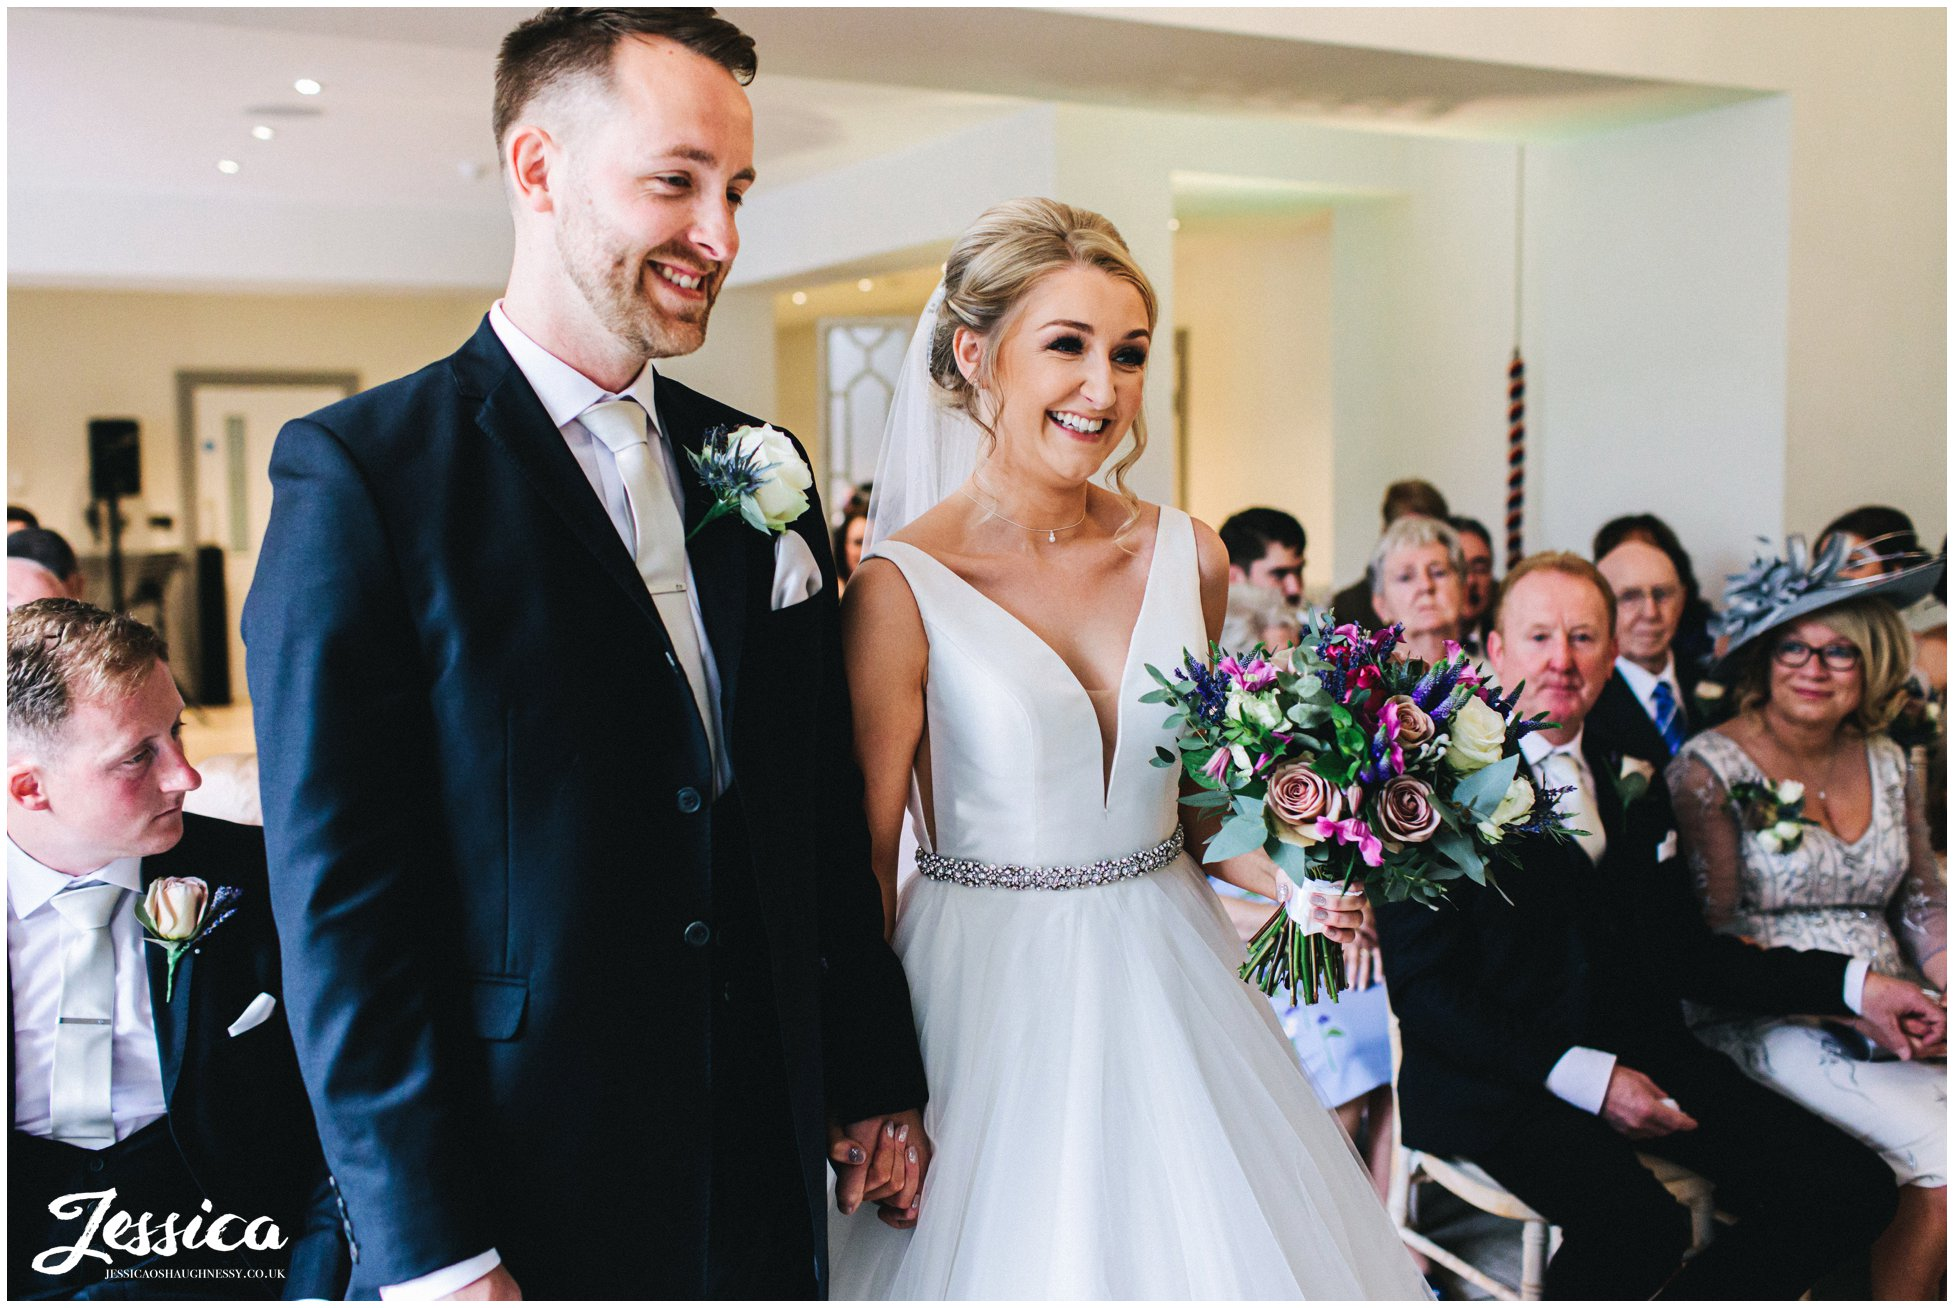 bride and groom smile during wedding ceremony in north wales